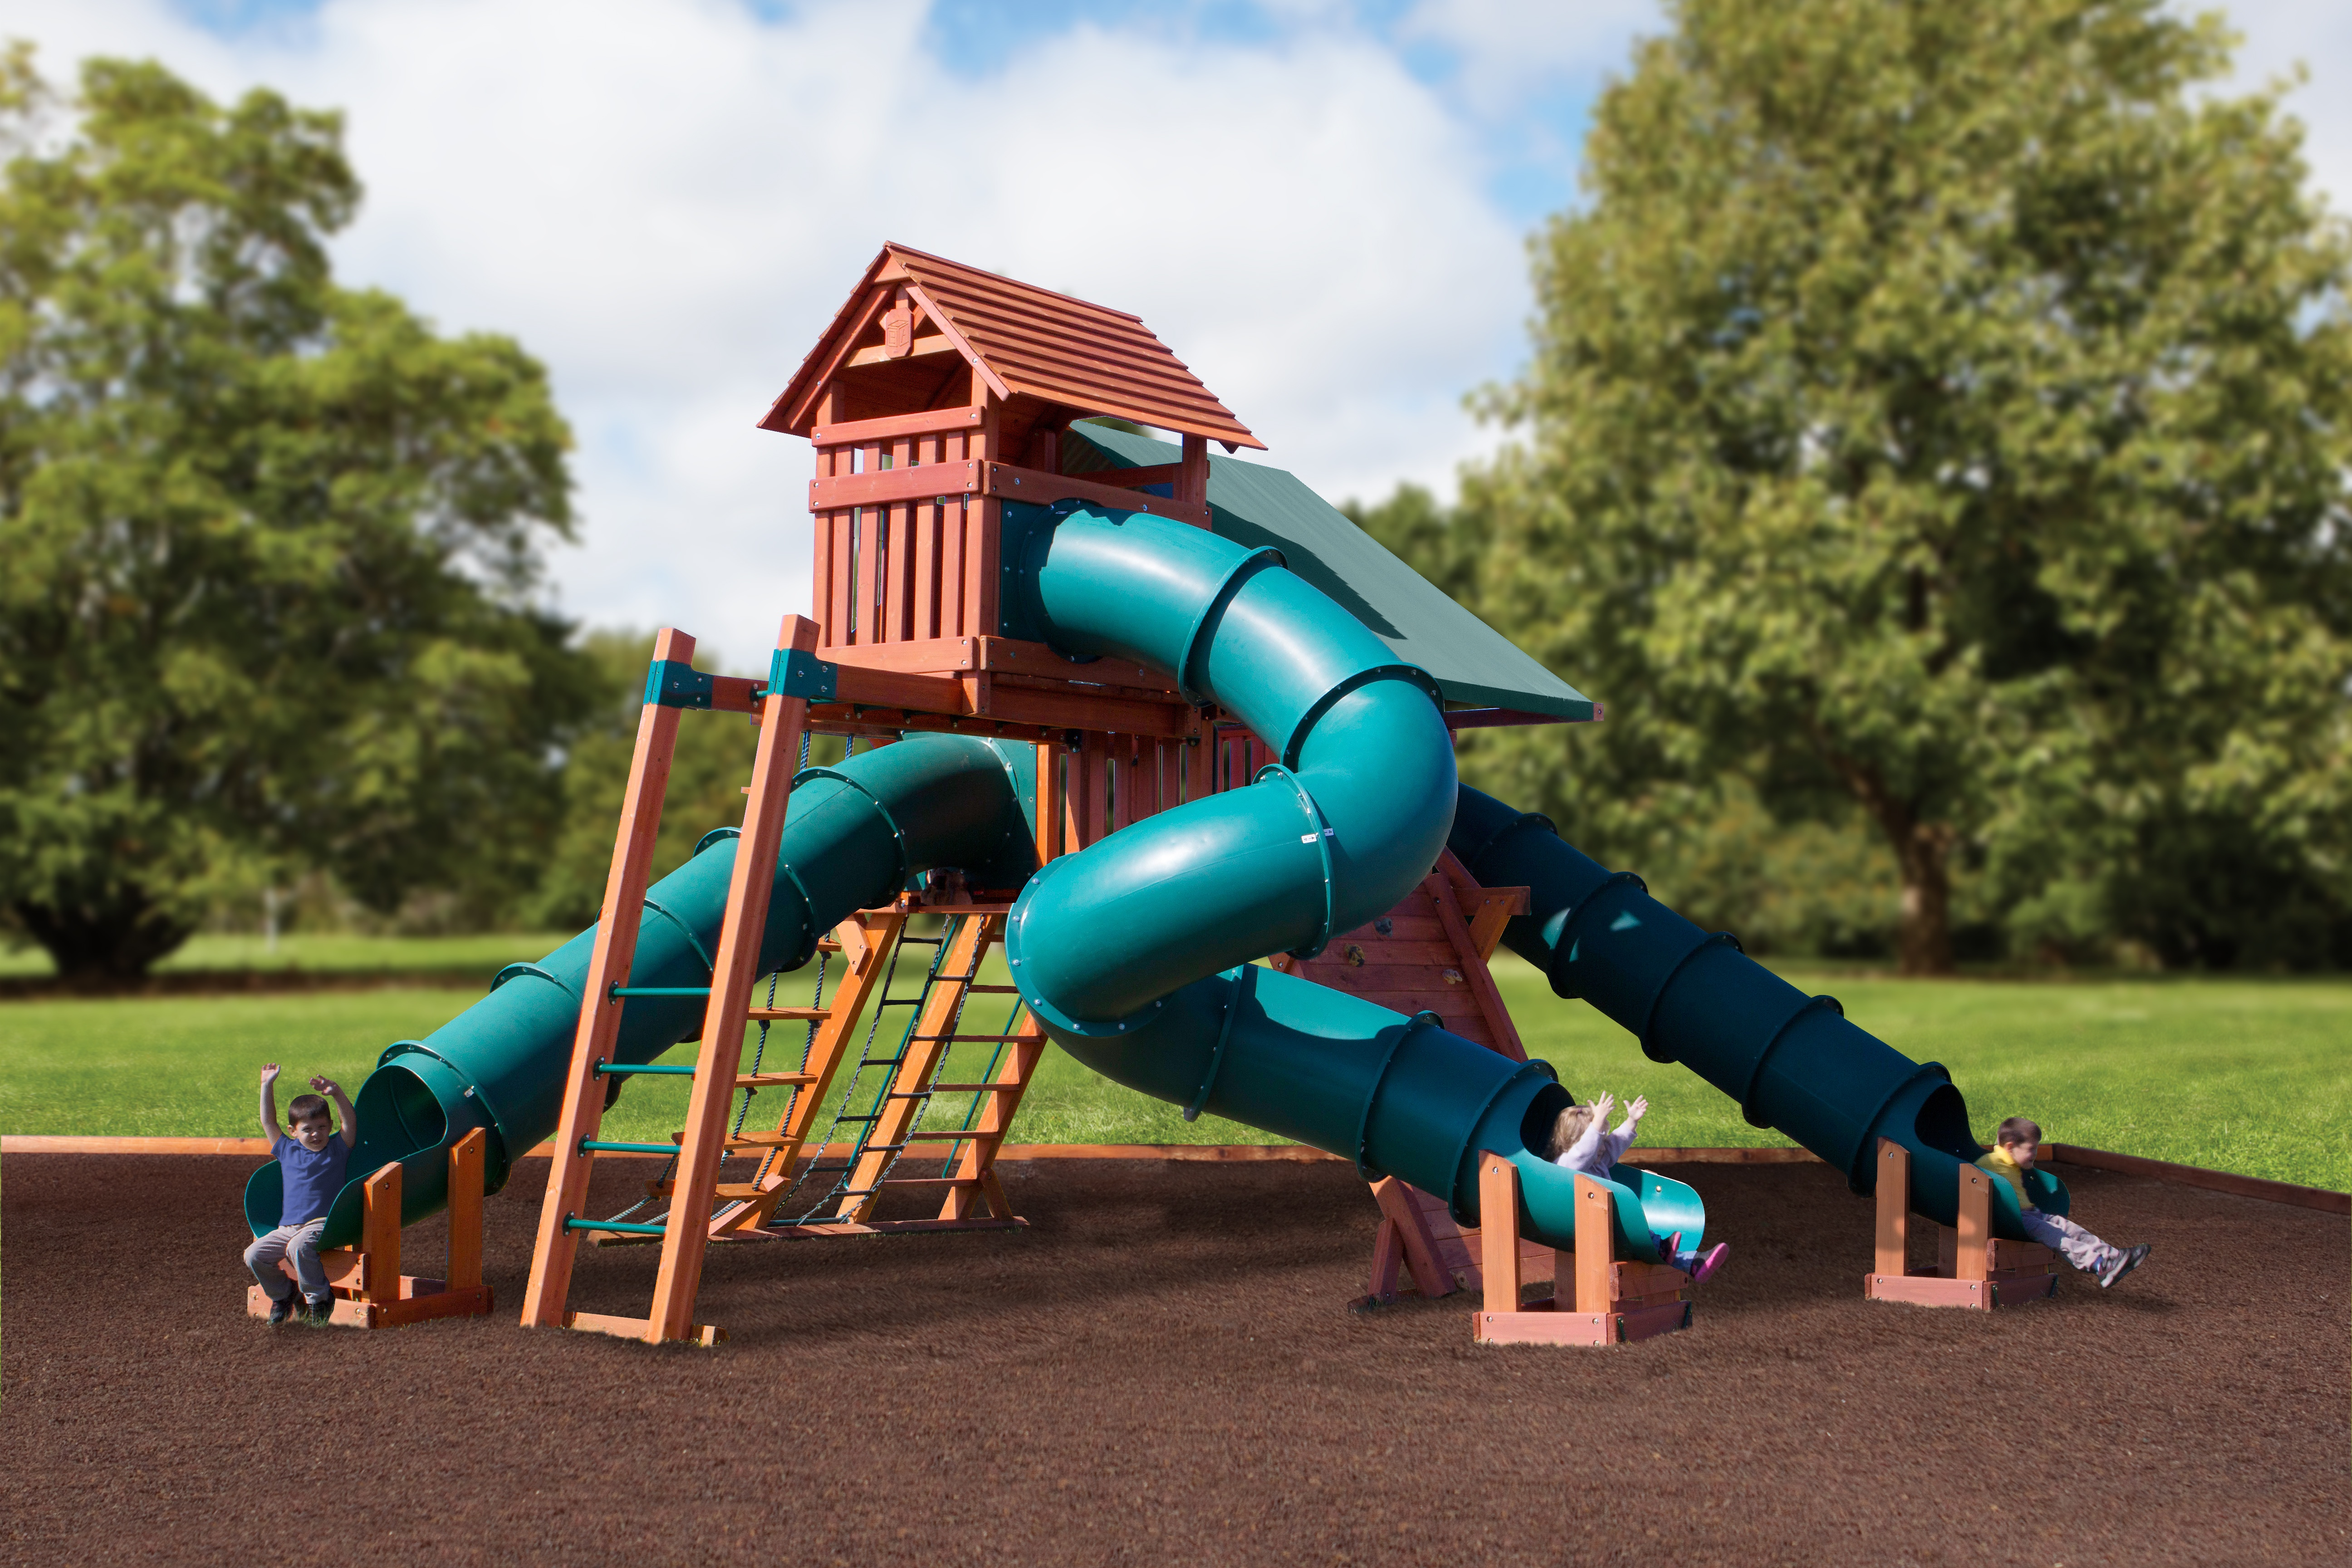 Multi slide idaho wooden playset installed